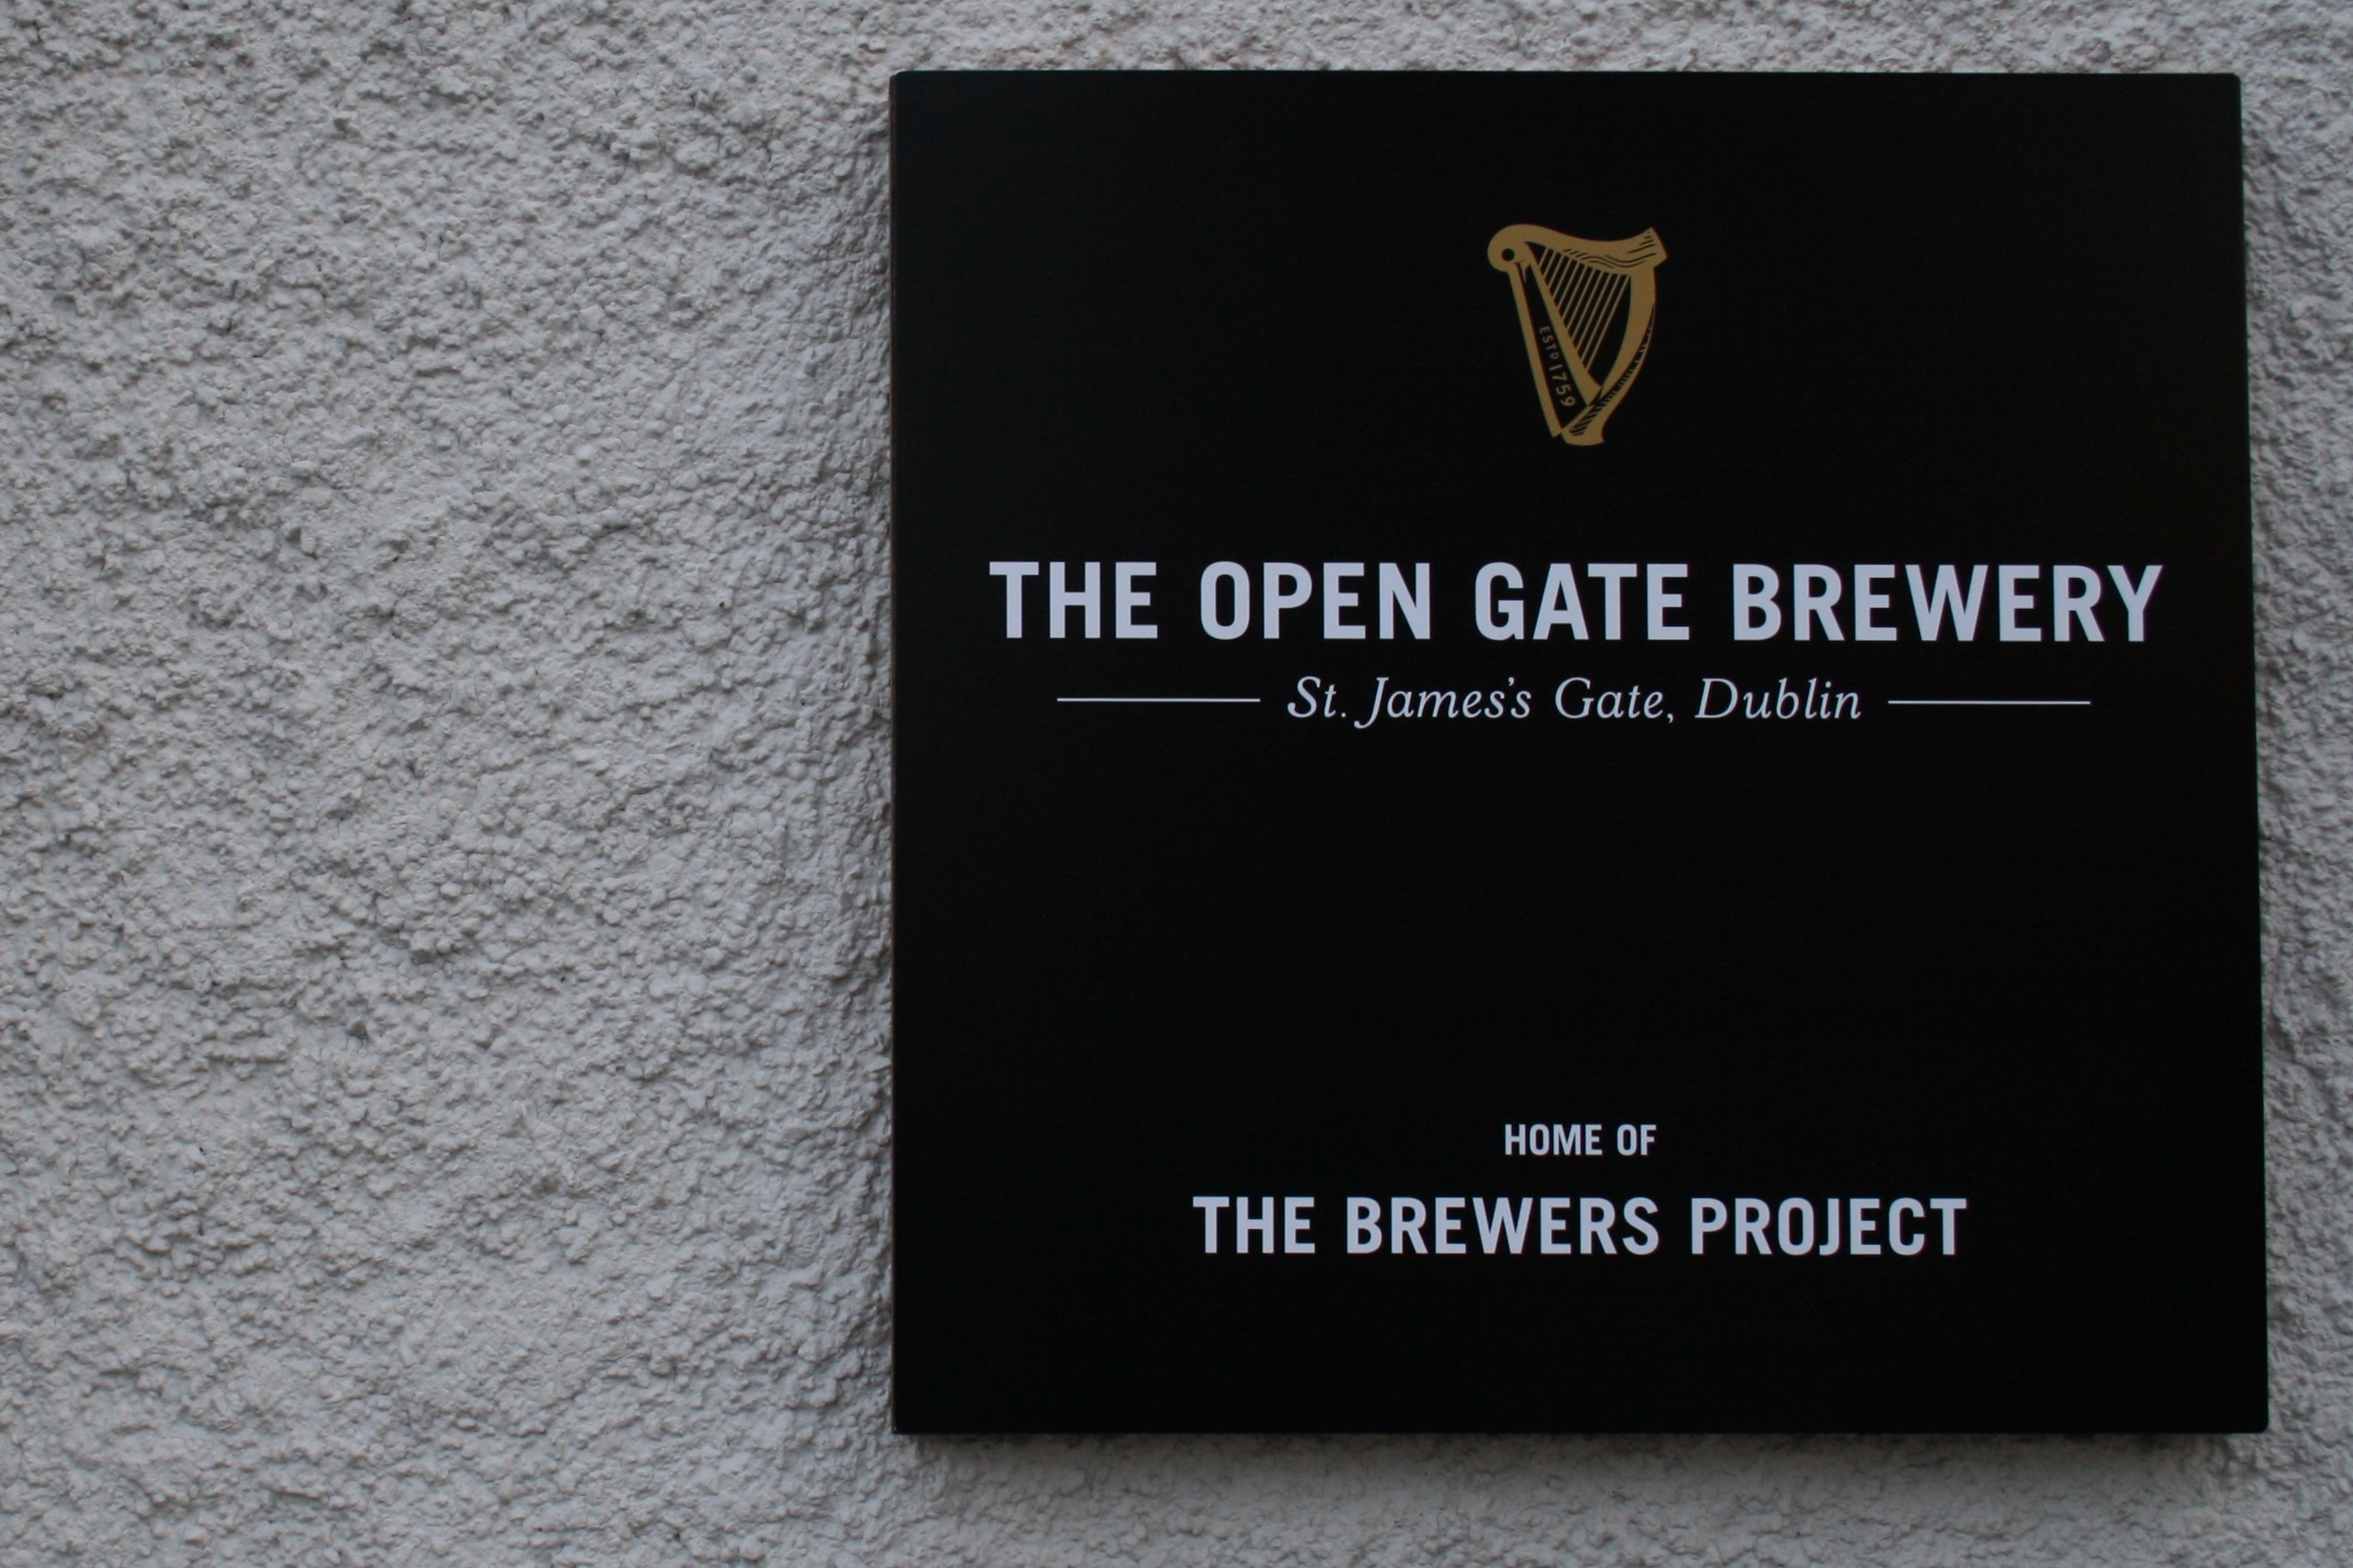 The Open Gate Brewery, Home of The Brewers Project from Guinness.